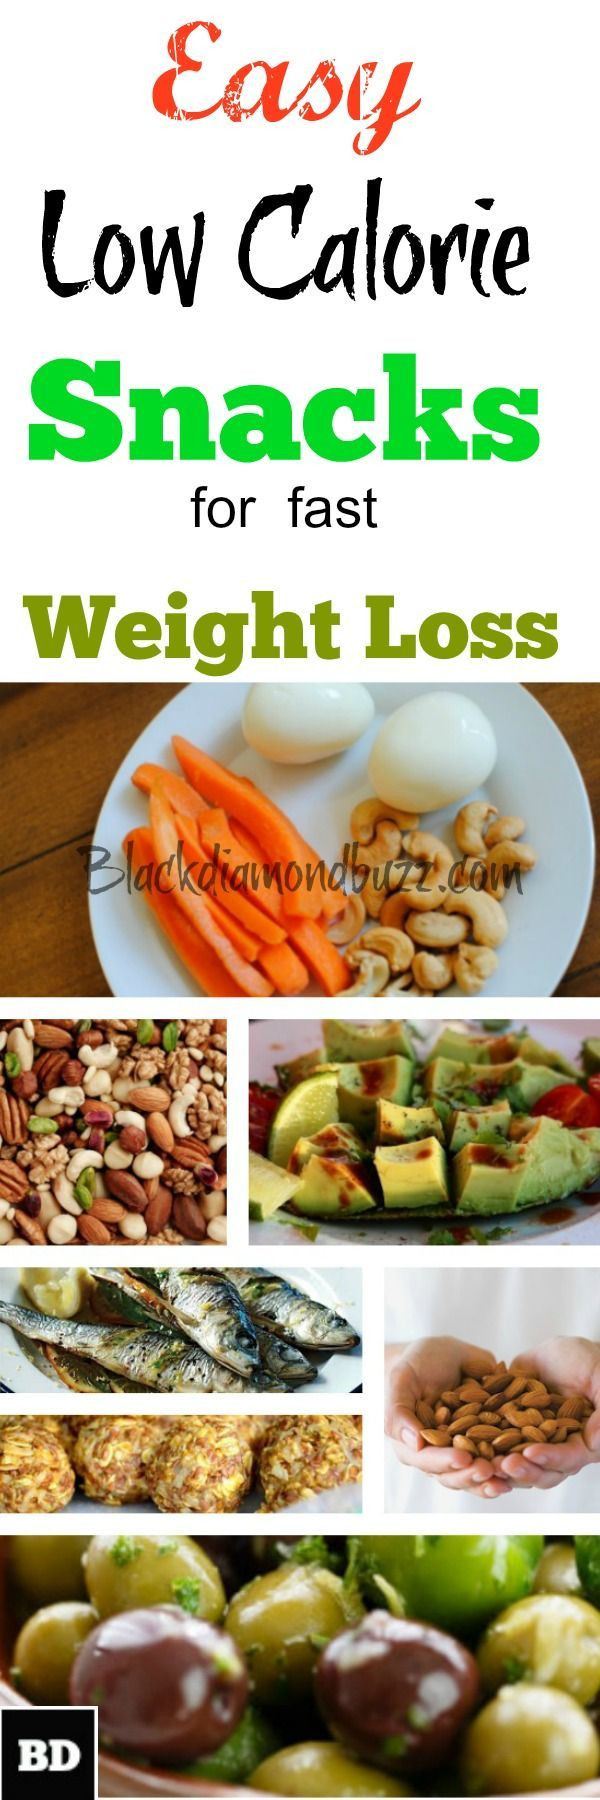 Healthy Snacks For Weight Loss  Best 25 Weight loss snacks ideas on Pinterest